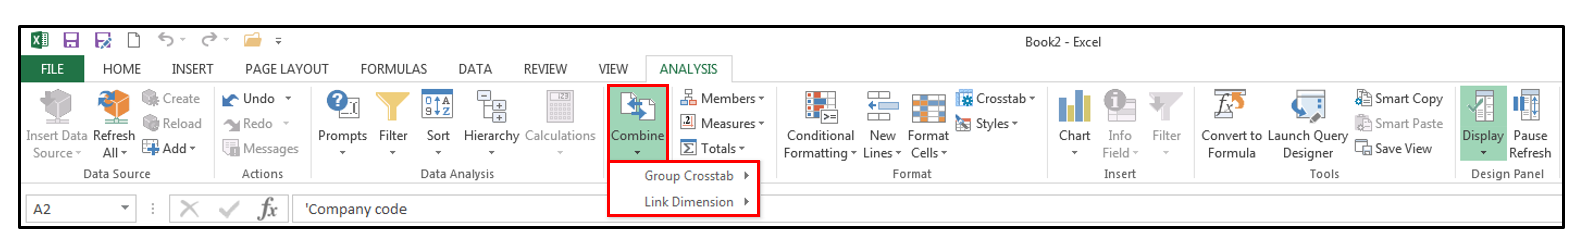 5 Cool Features You Should Be Using in Analysis for Office